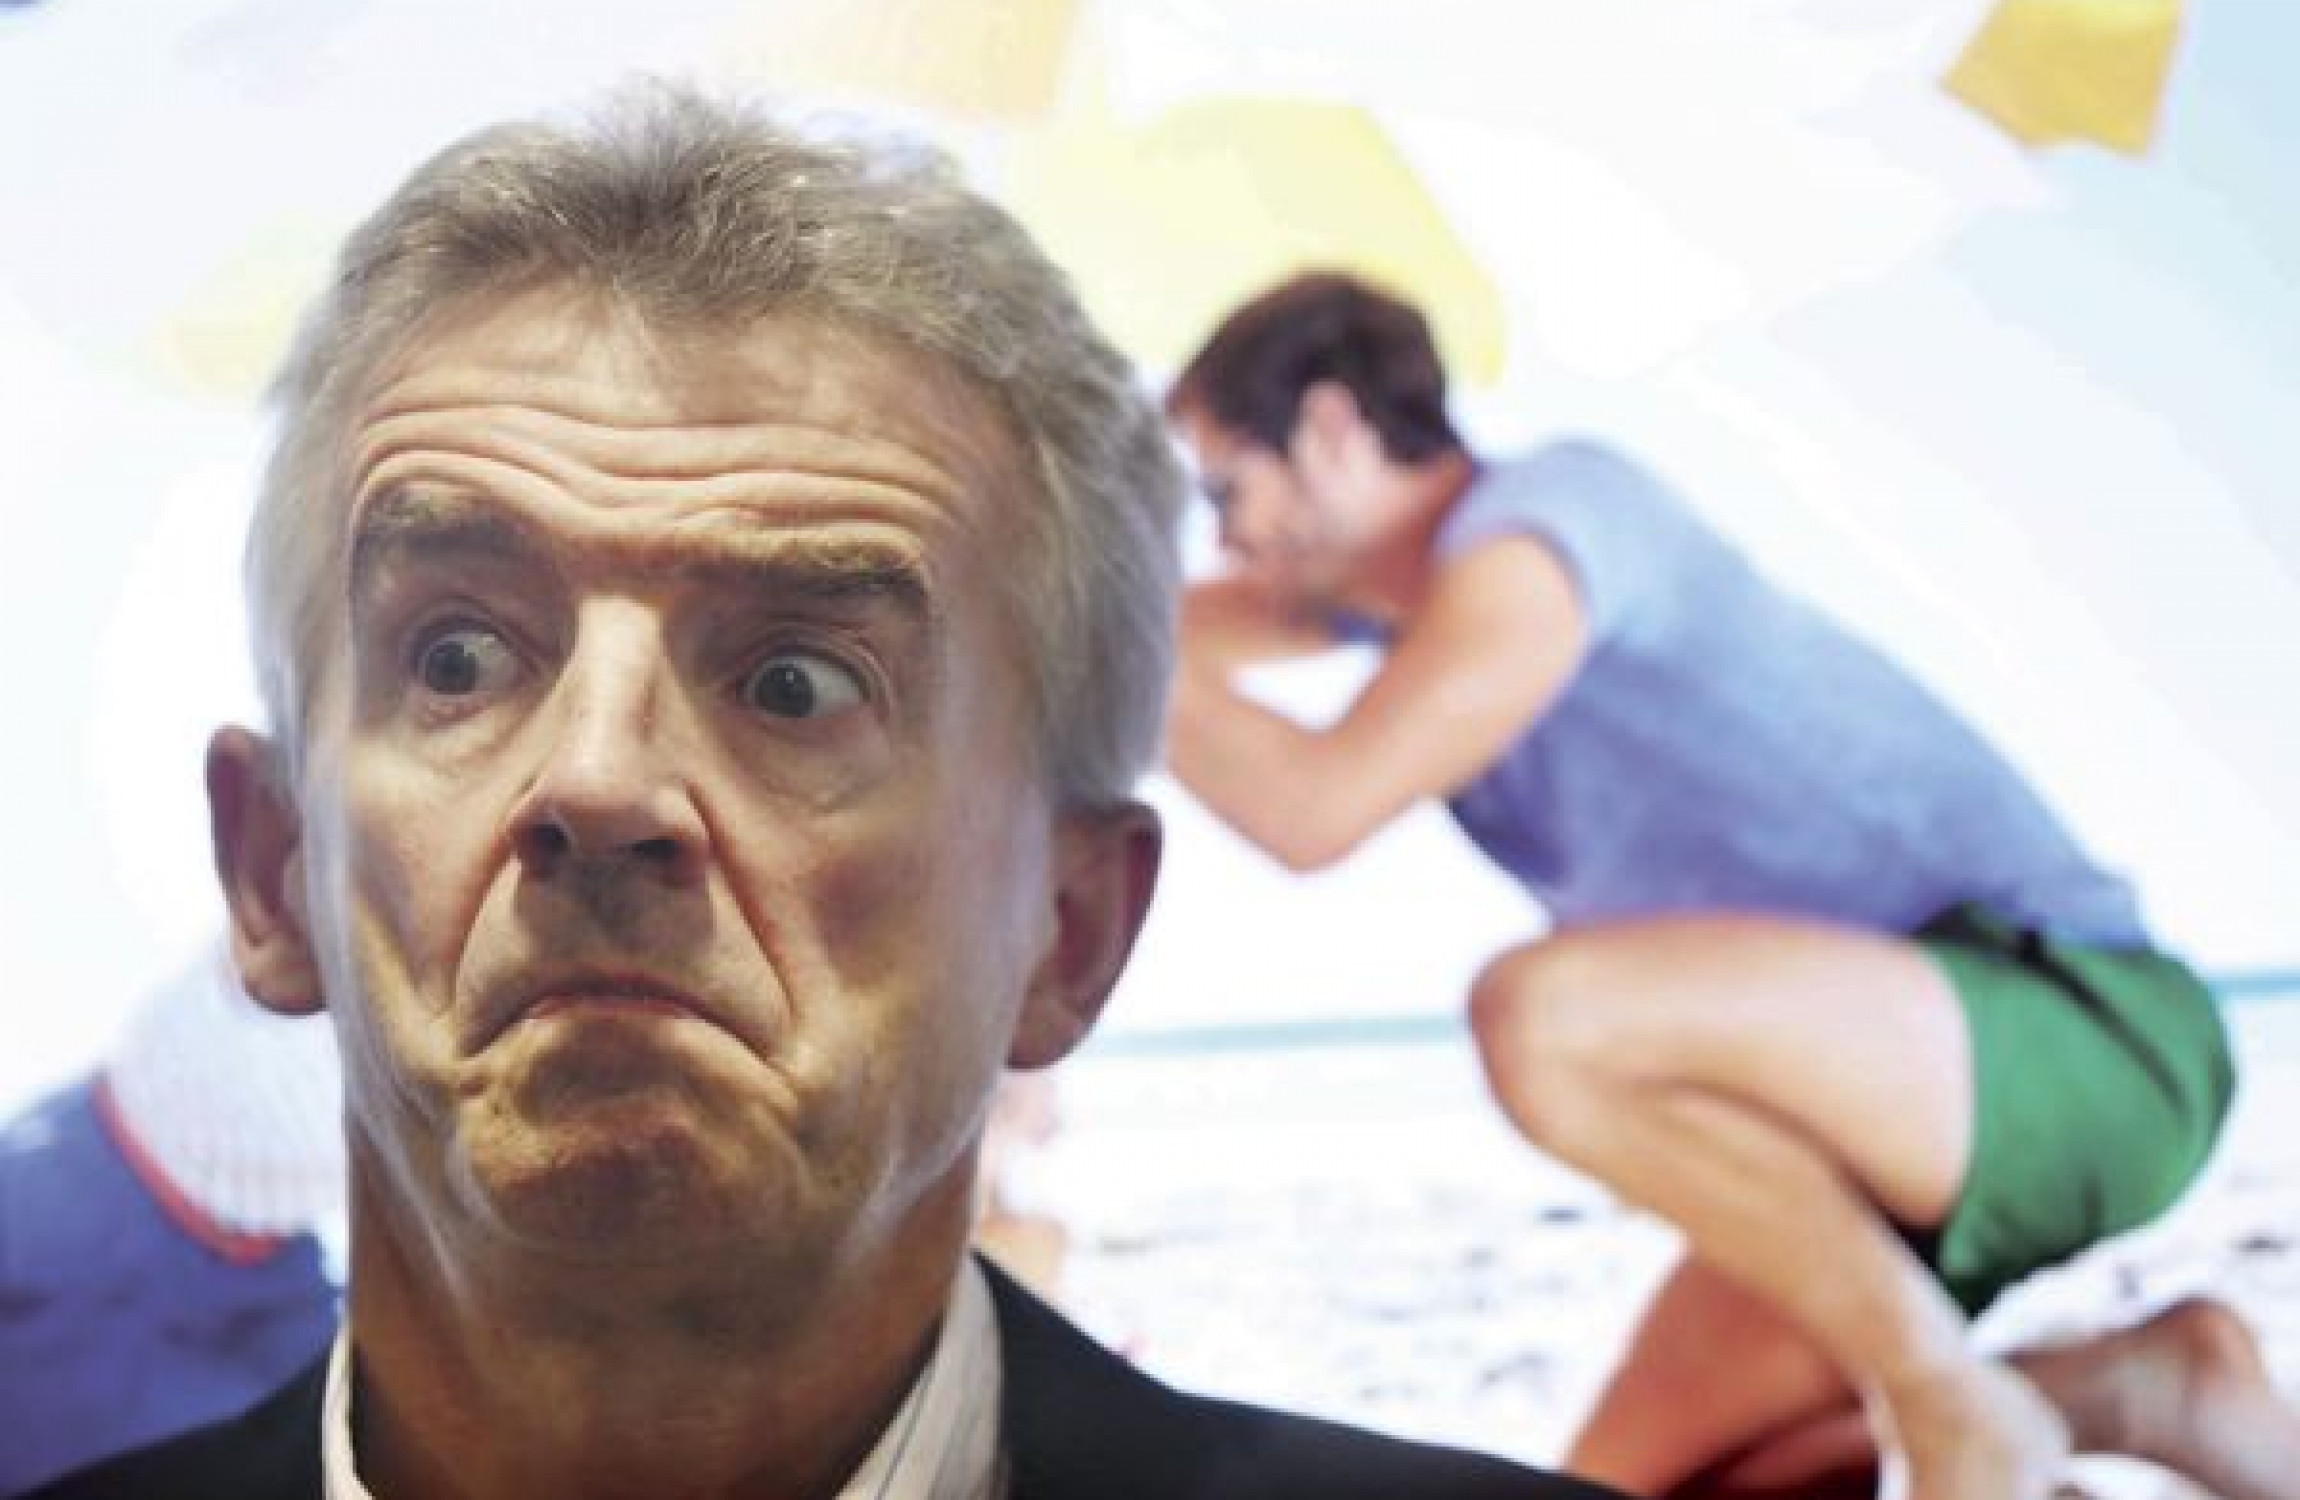 Ryanair boss Michael O'Leary 'promises pilots better pay to stay'